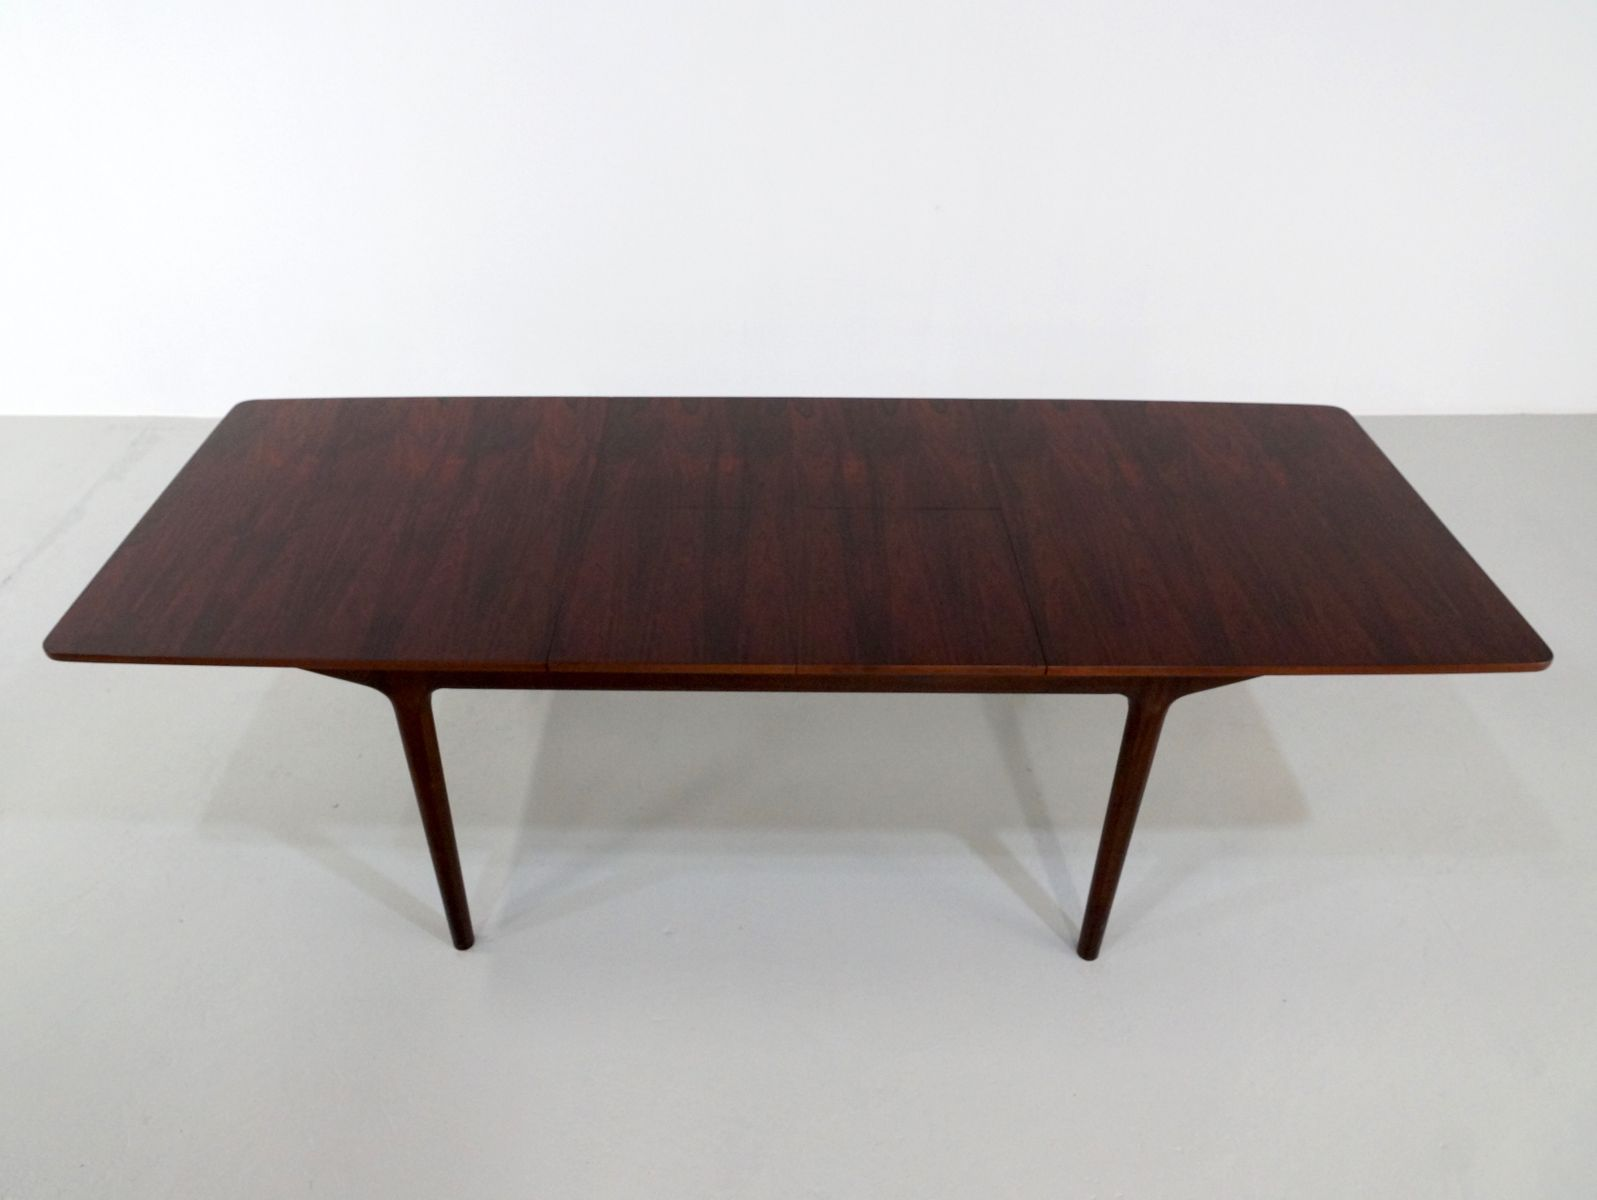 British Extendable Rosewood Dining Table from McIntosh  : british extendable rosewood dining table from mcintosh 1971 9 from www.pamono.co.uk size 1597 x 1200 jpeg 60kB